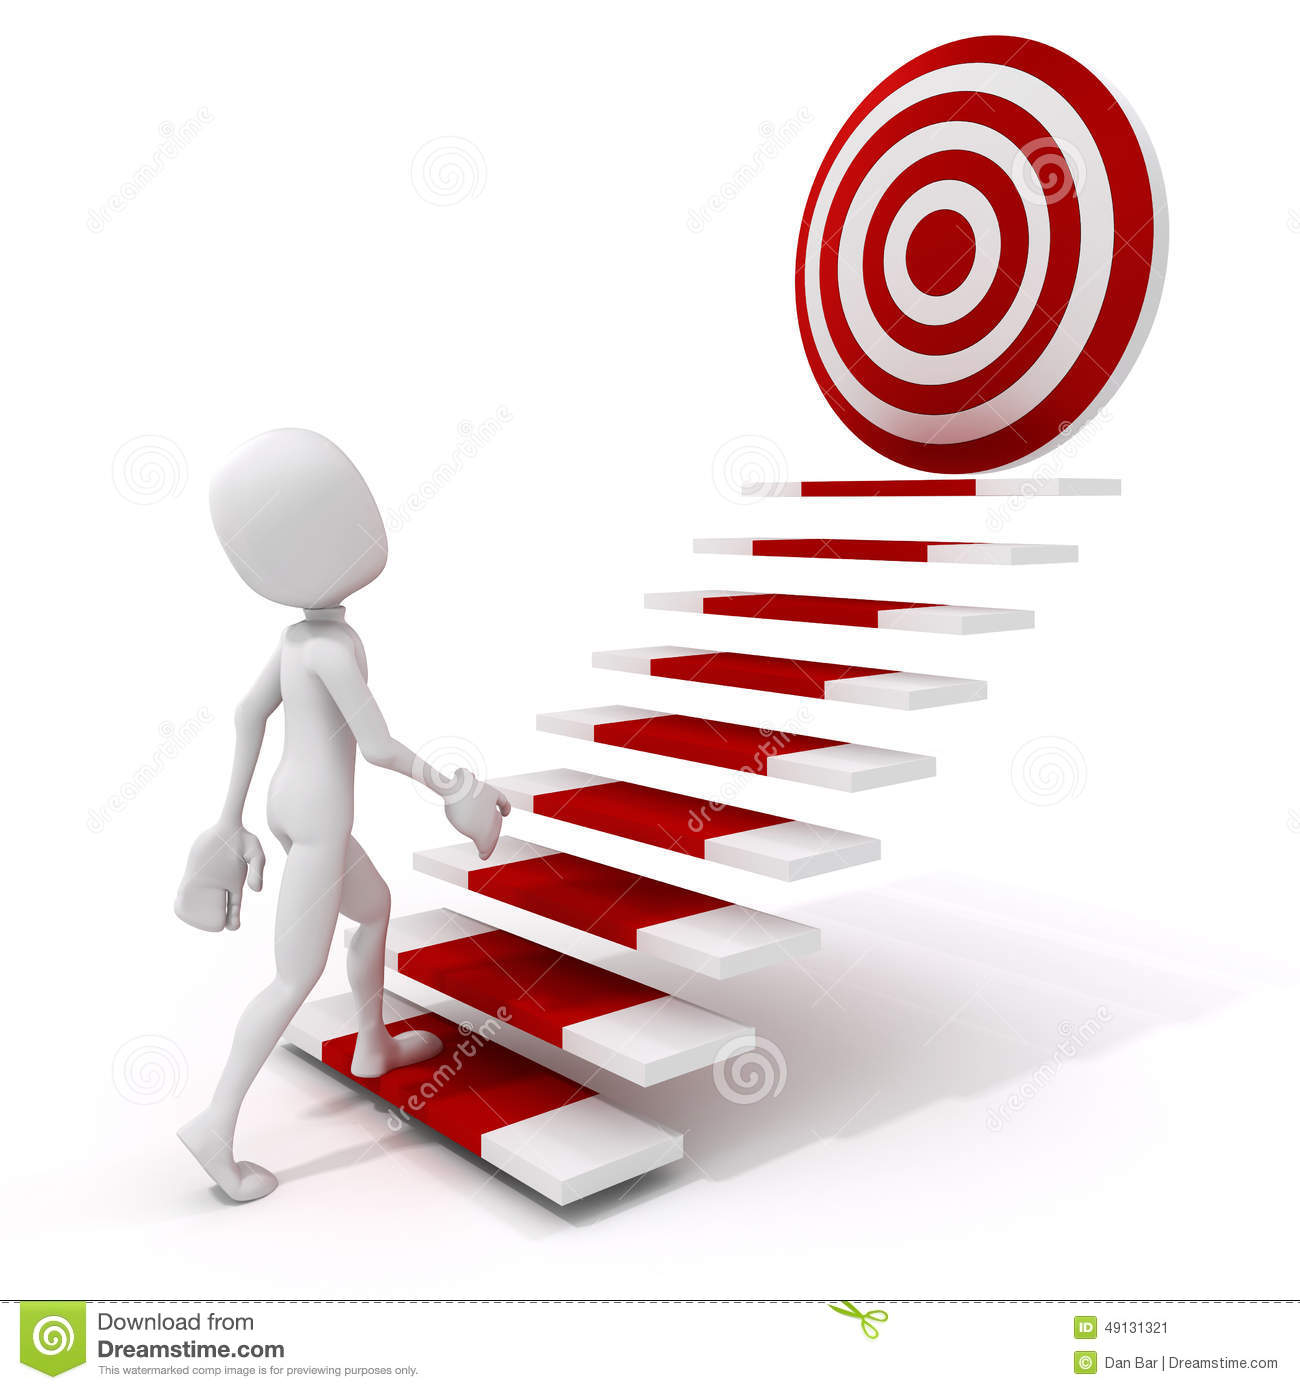 3d Man Climbing On A Stair To Success Stock Illustration ... for Climbing Stairs To Success  113cpg